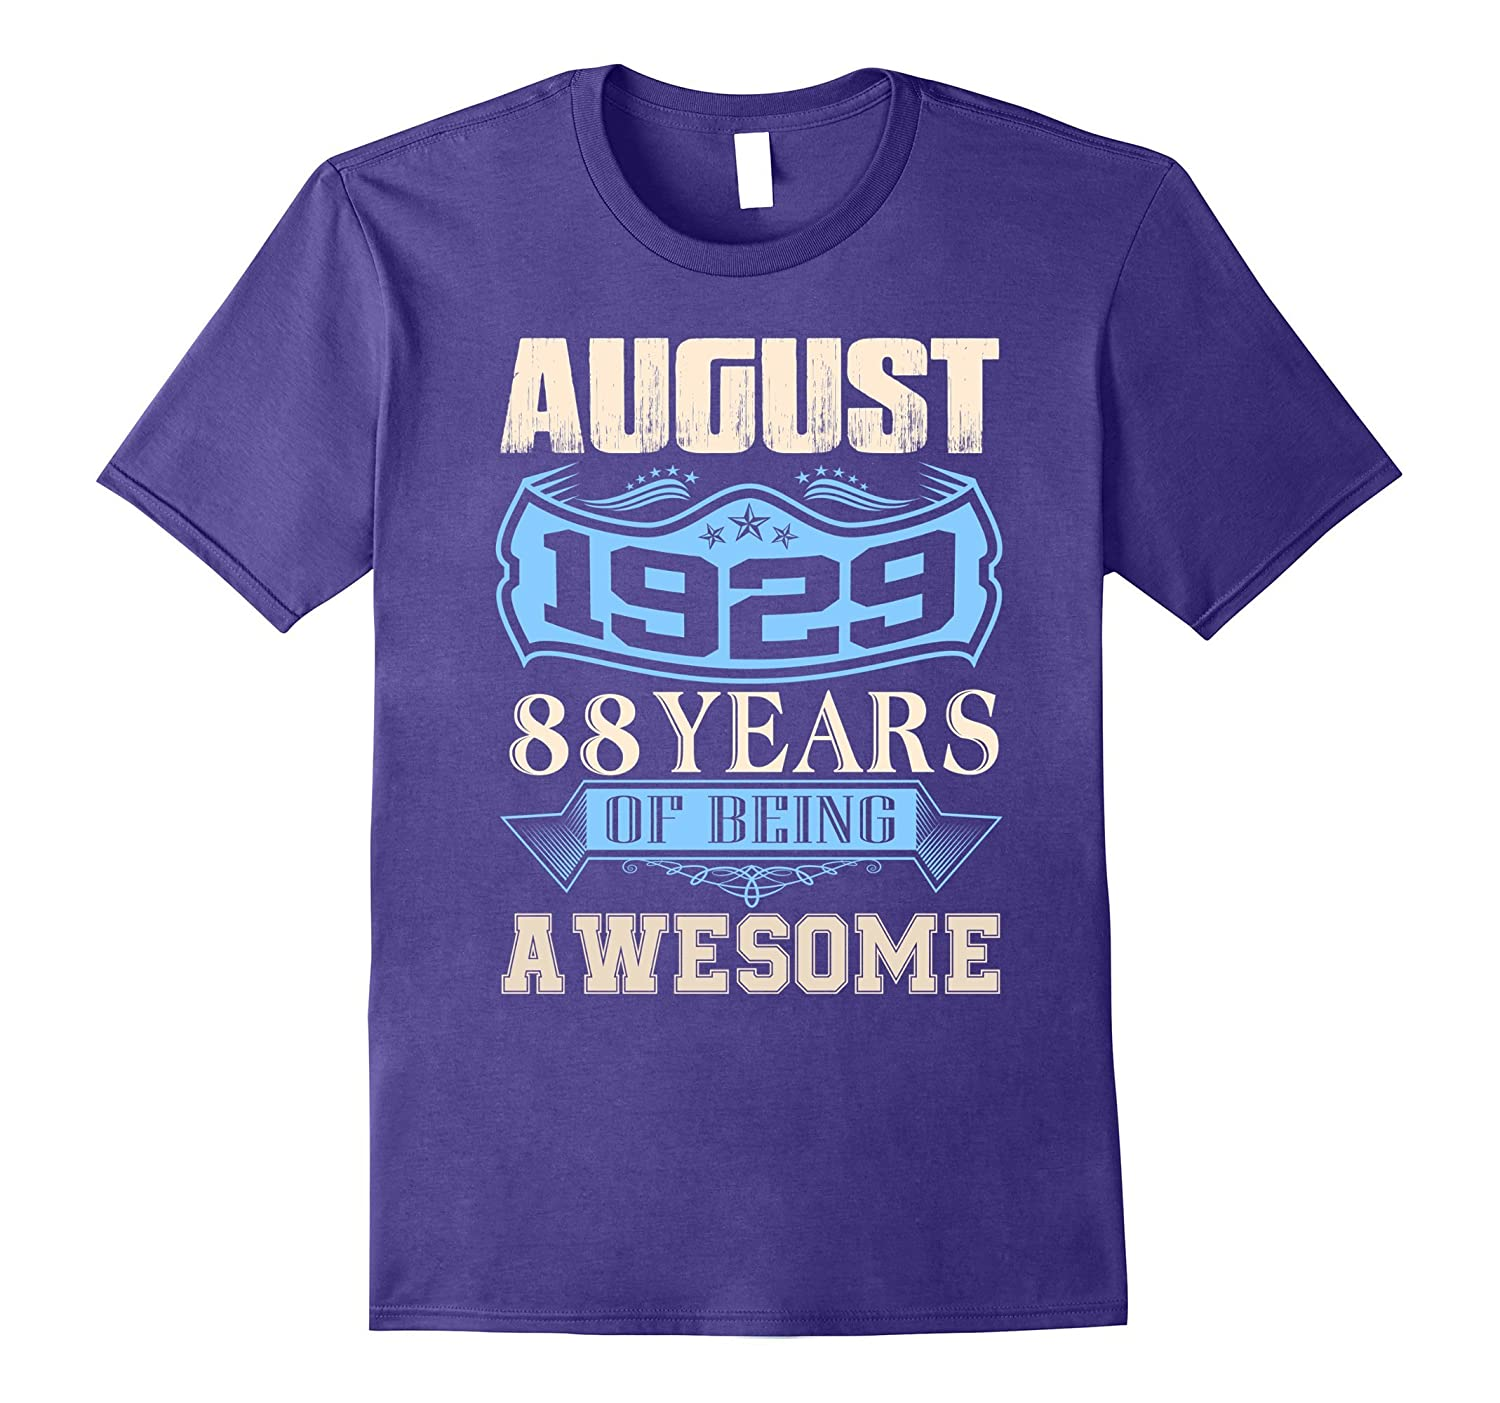 88 years of being awesome - Born in August 1929 Tshirt-Art